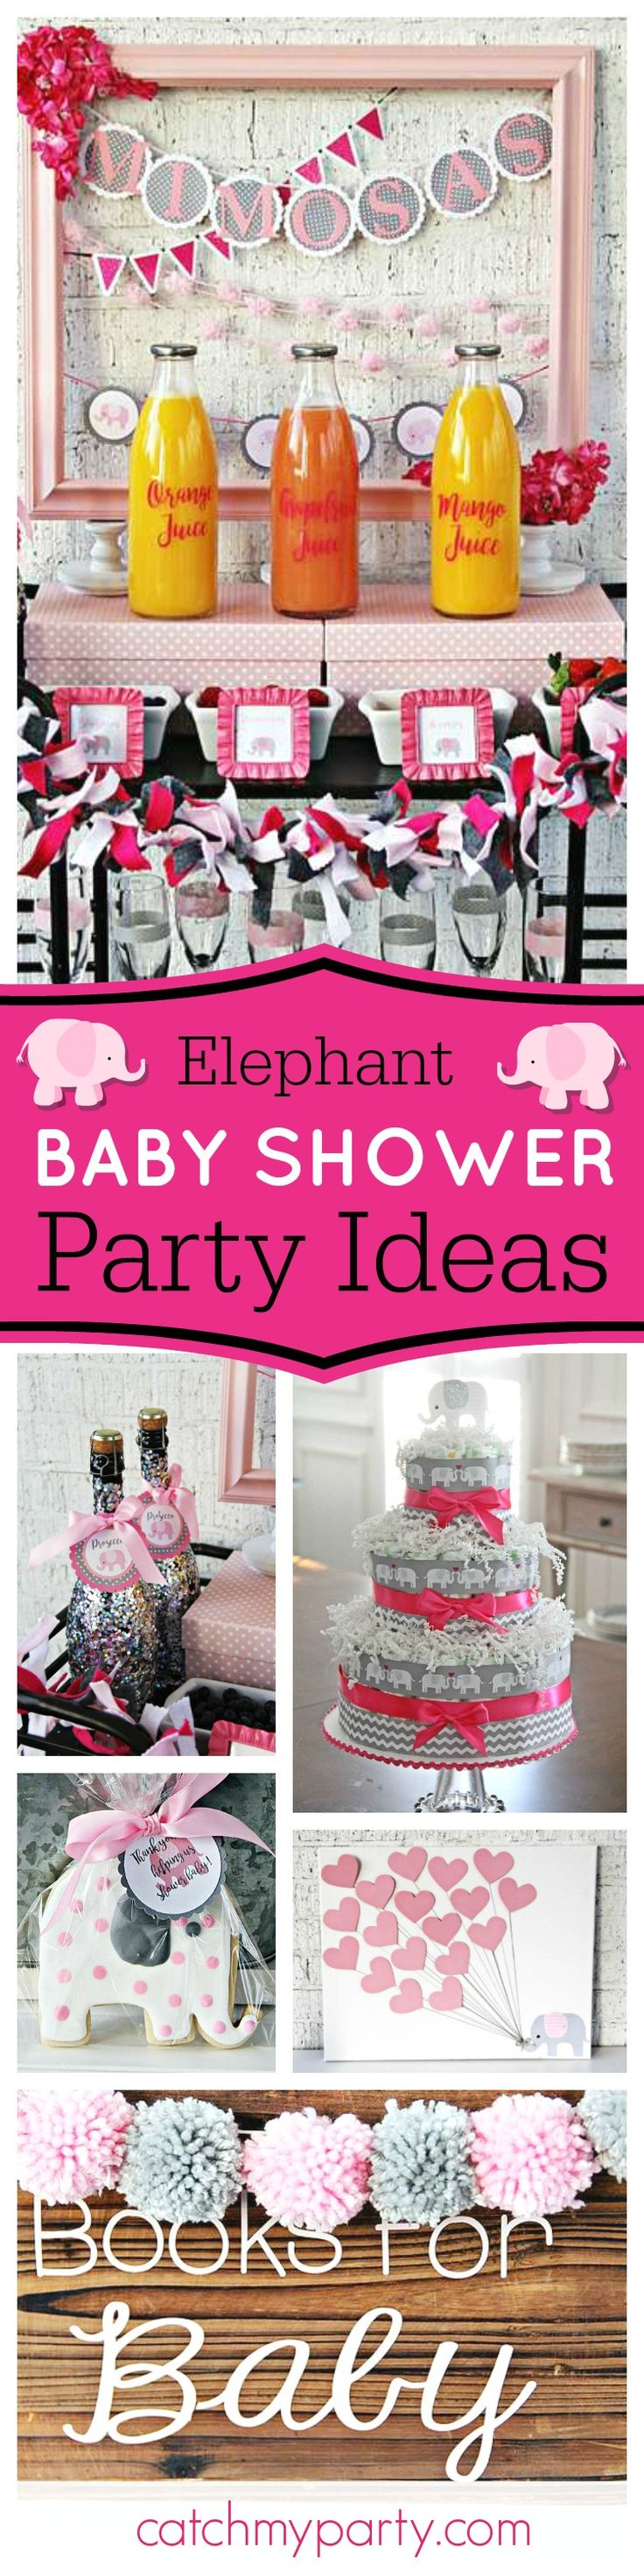 Don't miss this adorable Elephant inspired Baby Shower! The cookies are gorgeous!! See more party ideas and share yours at CatchMyParty.com